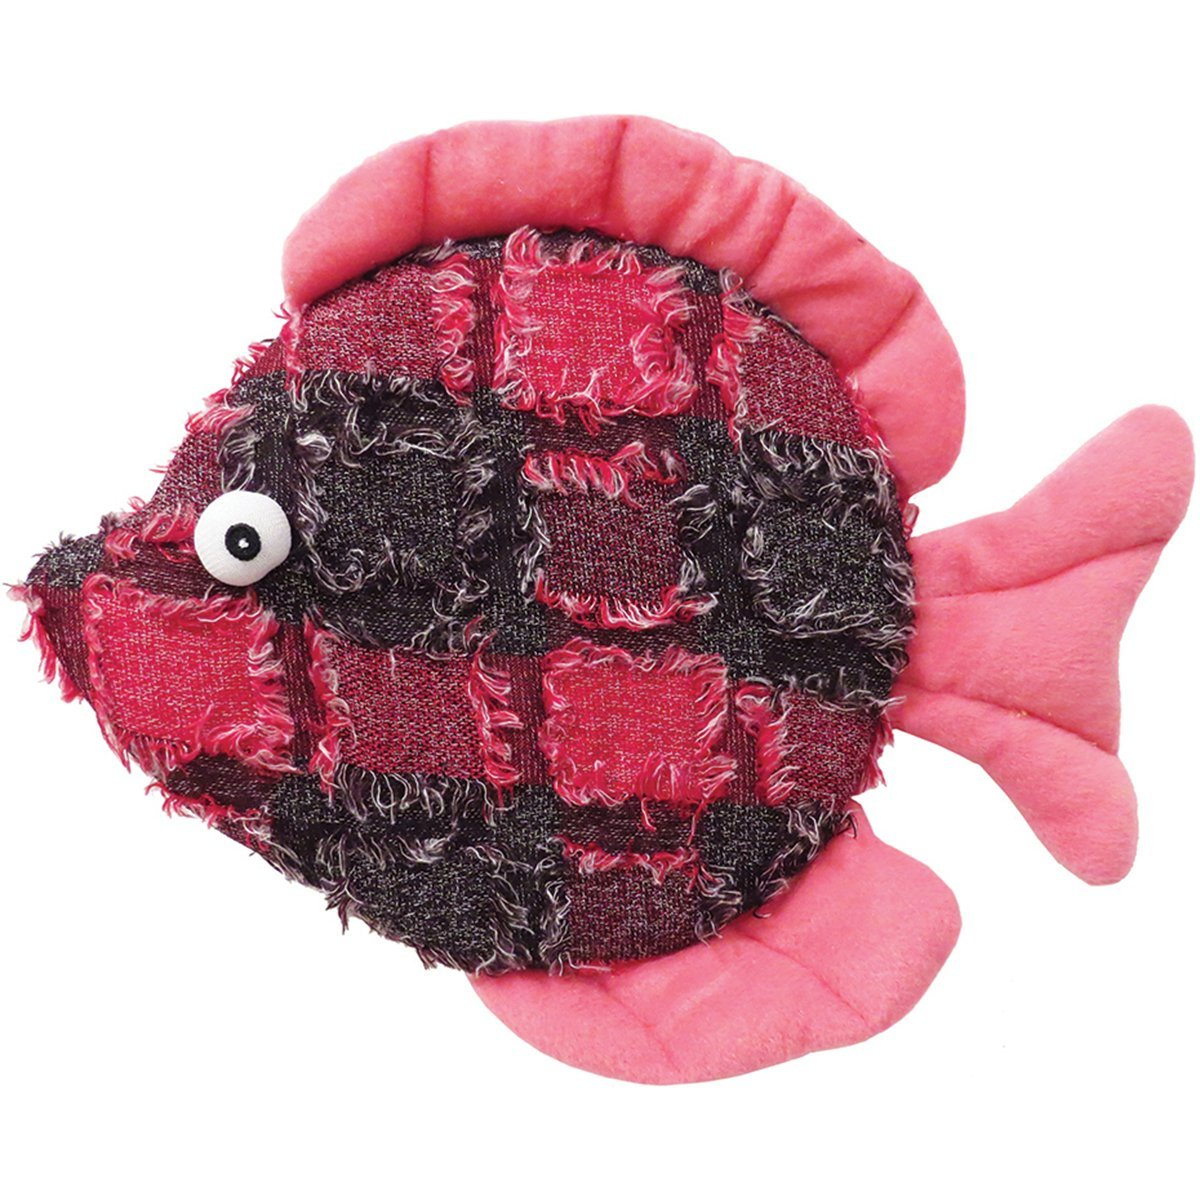 Plush Donna Discus Fish Dog Toy 10.5""